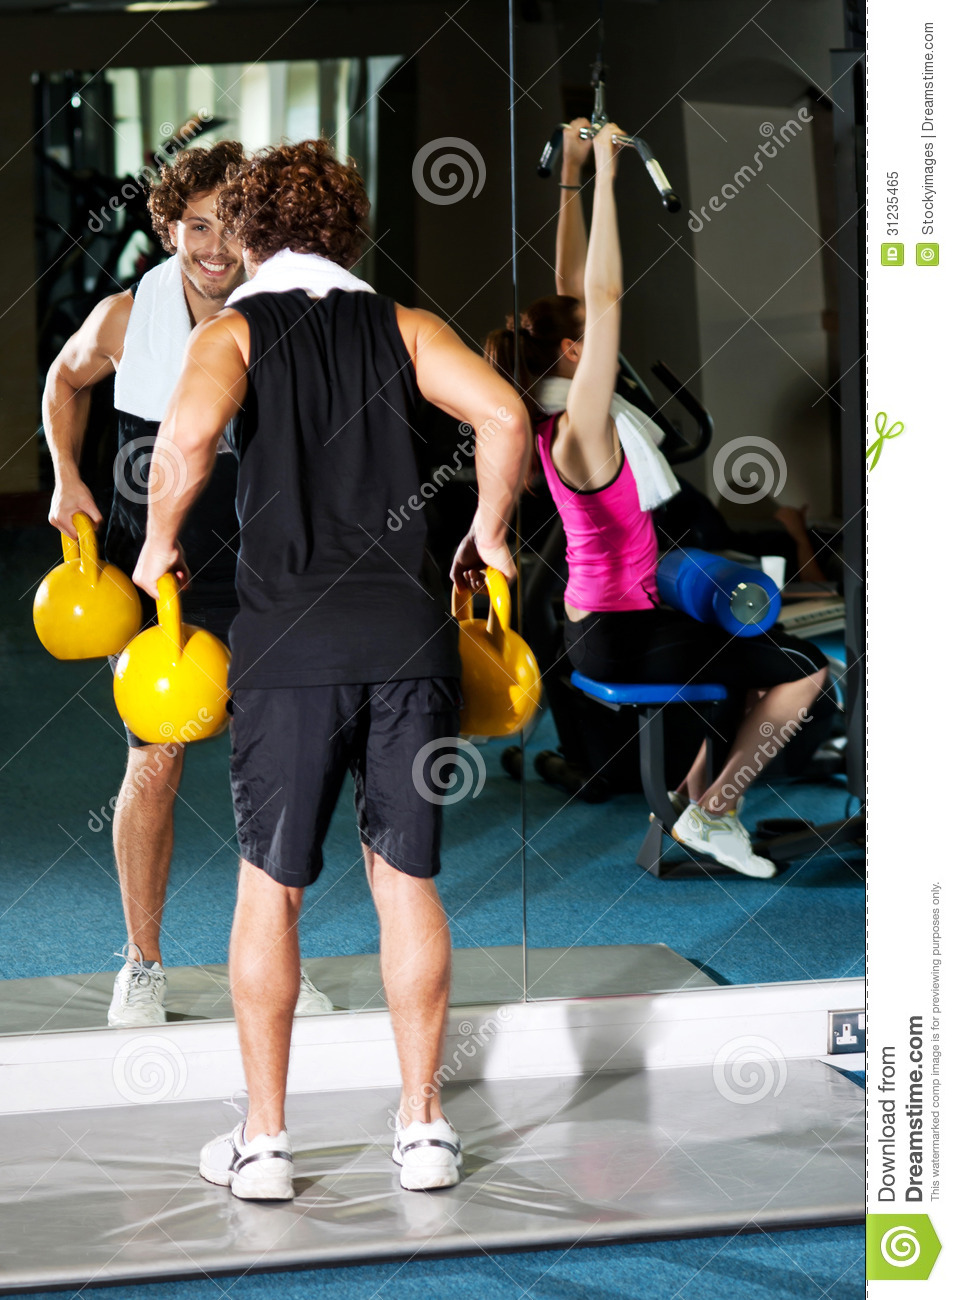 Athletic People Working Out With Equipments Royalty Free